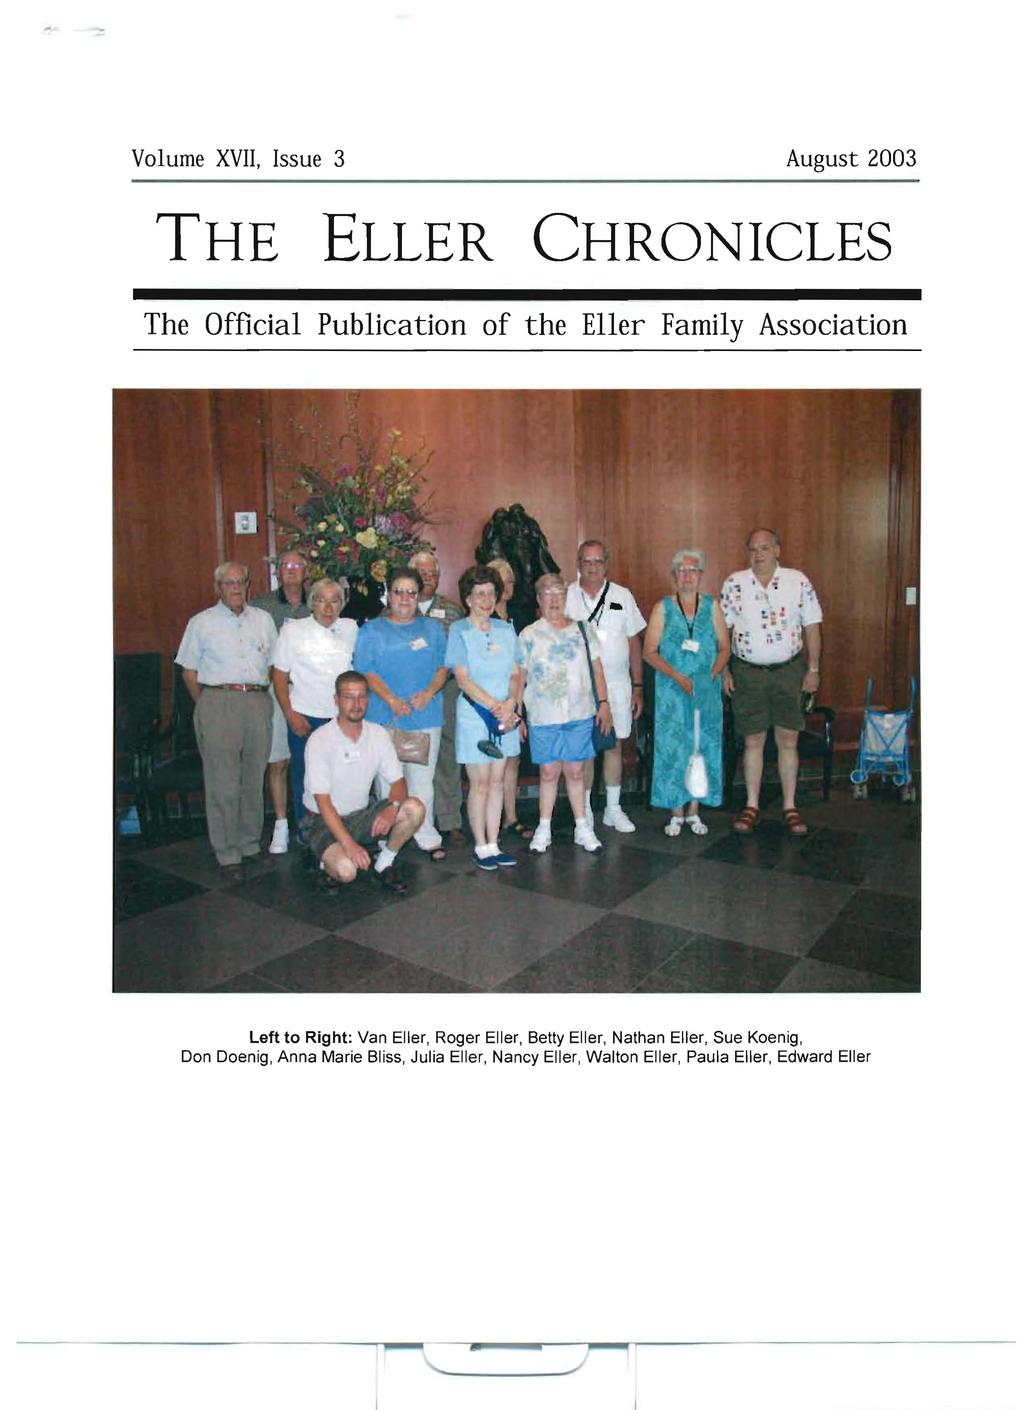 This edition of the Eller Chronicles was scanned using OCR by Harvey W. Powers on April 13, 2009. Note: Some pages that contained only photos that scanned poorly were ommitted.